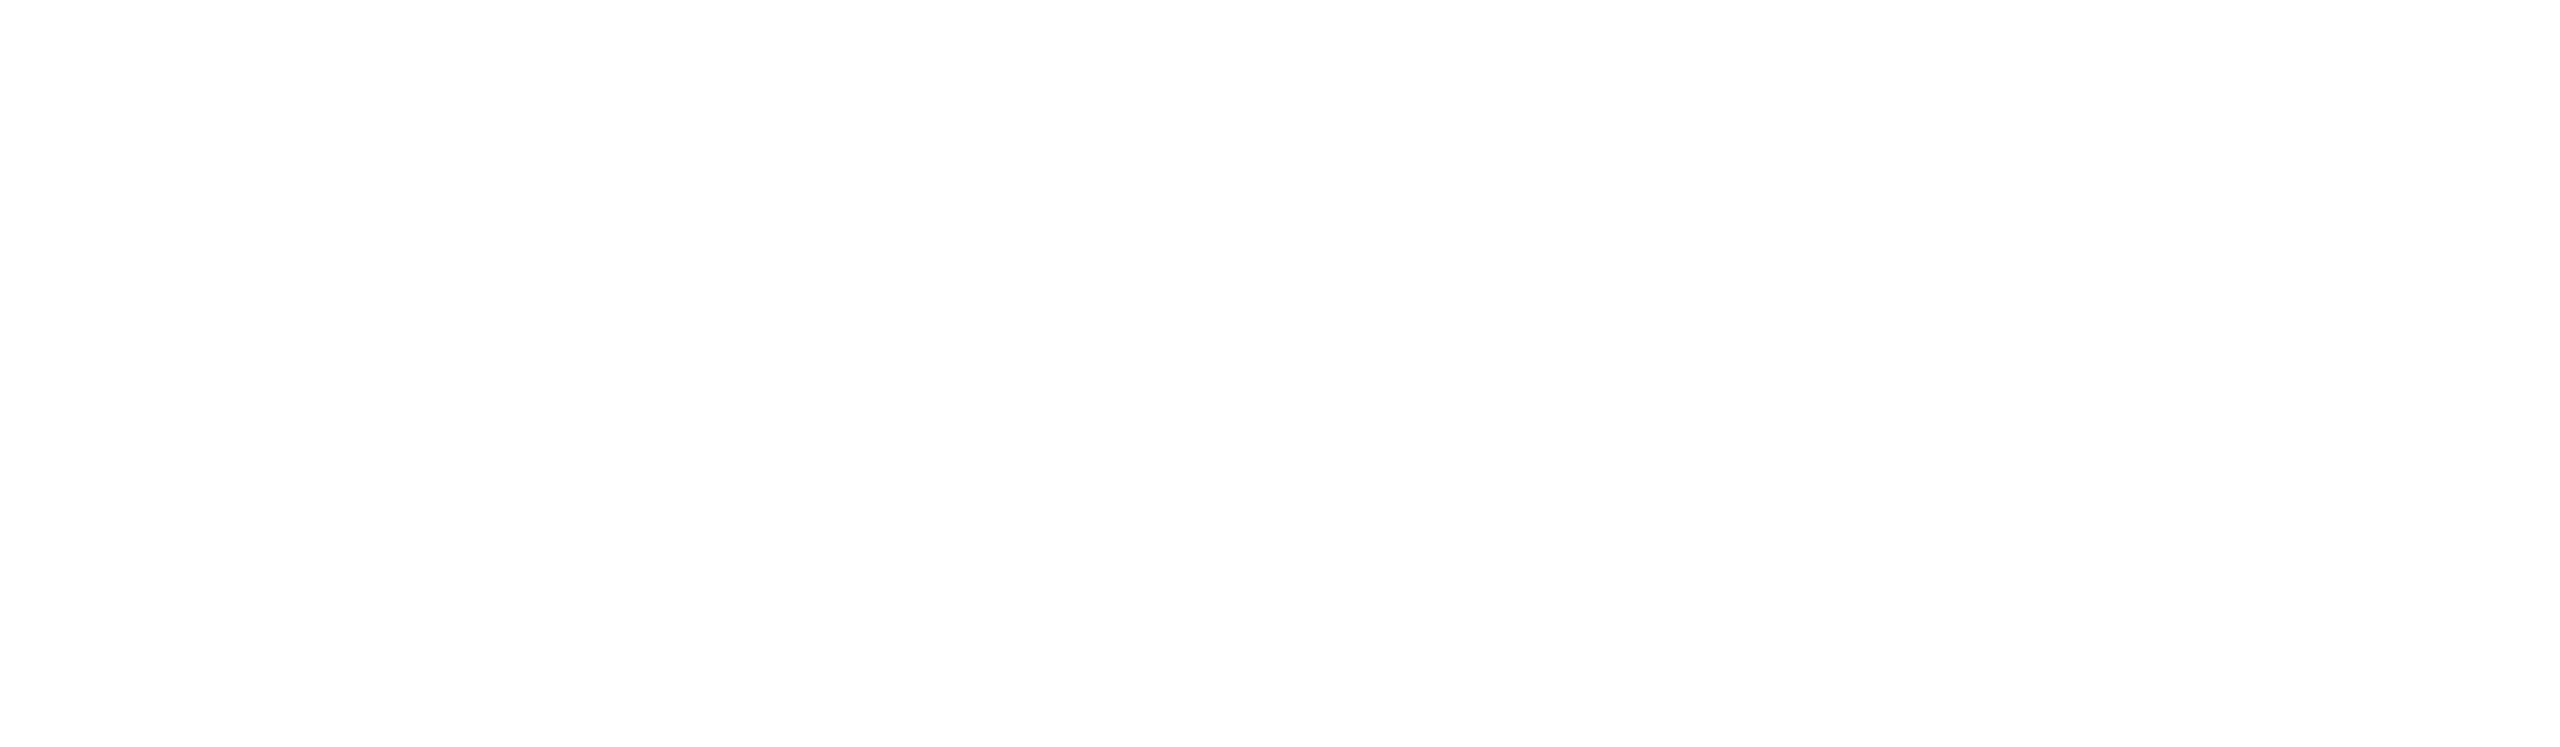 RETAILATAM Business Solutions